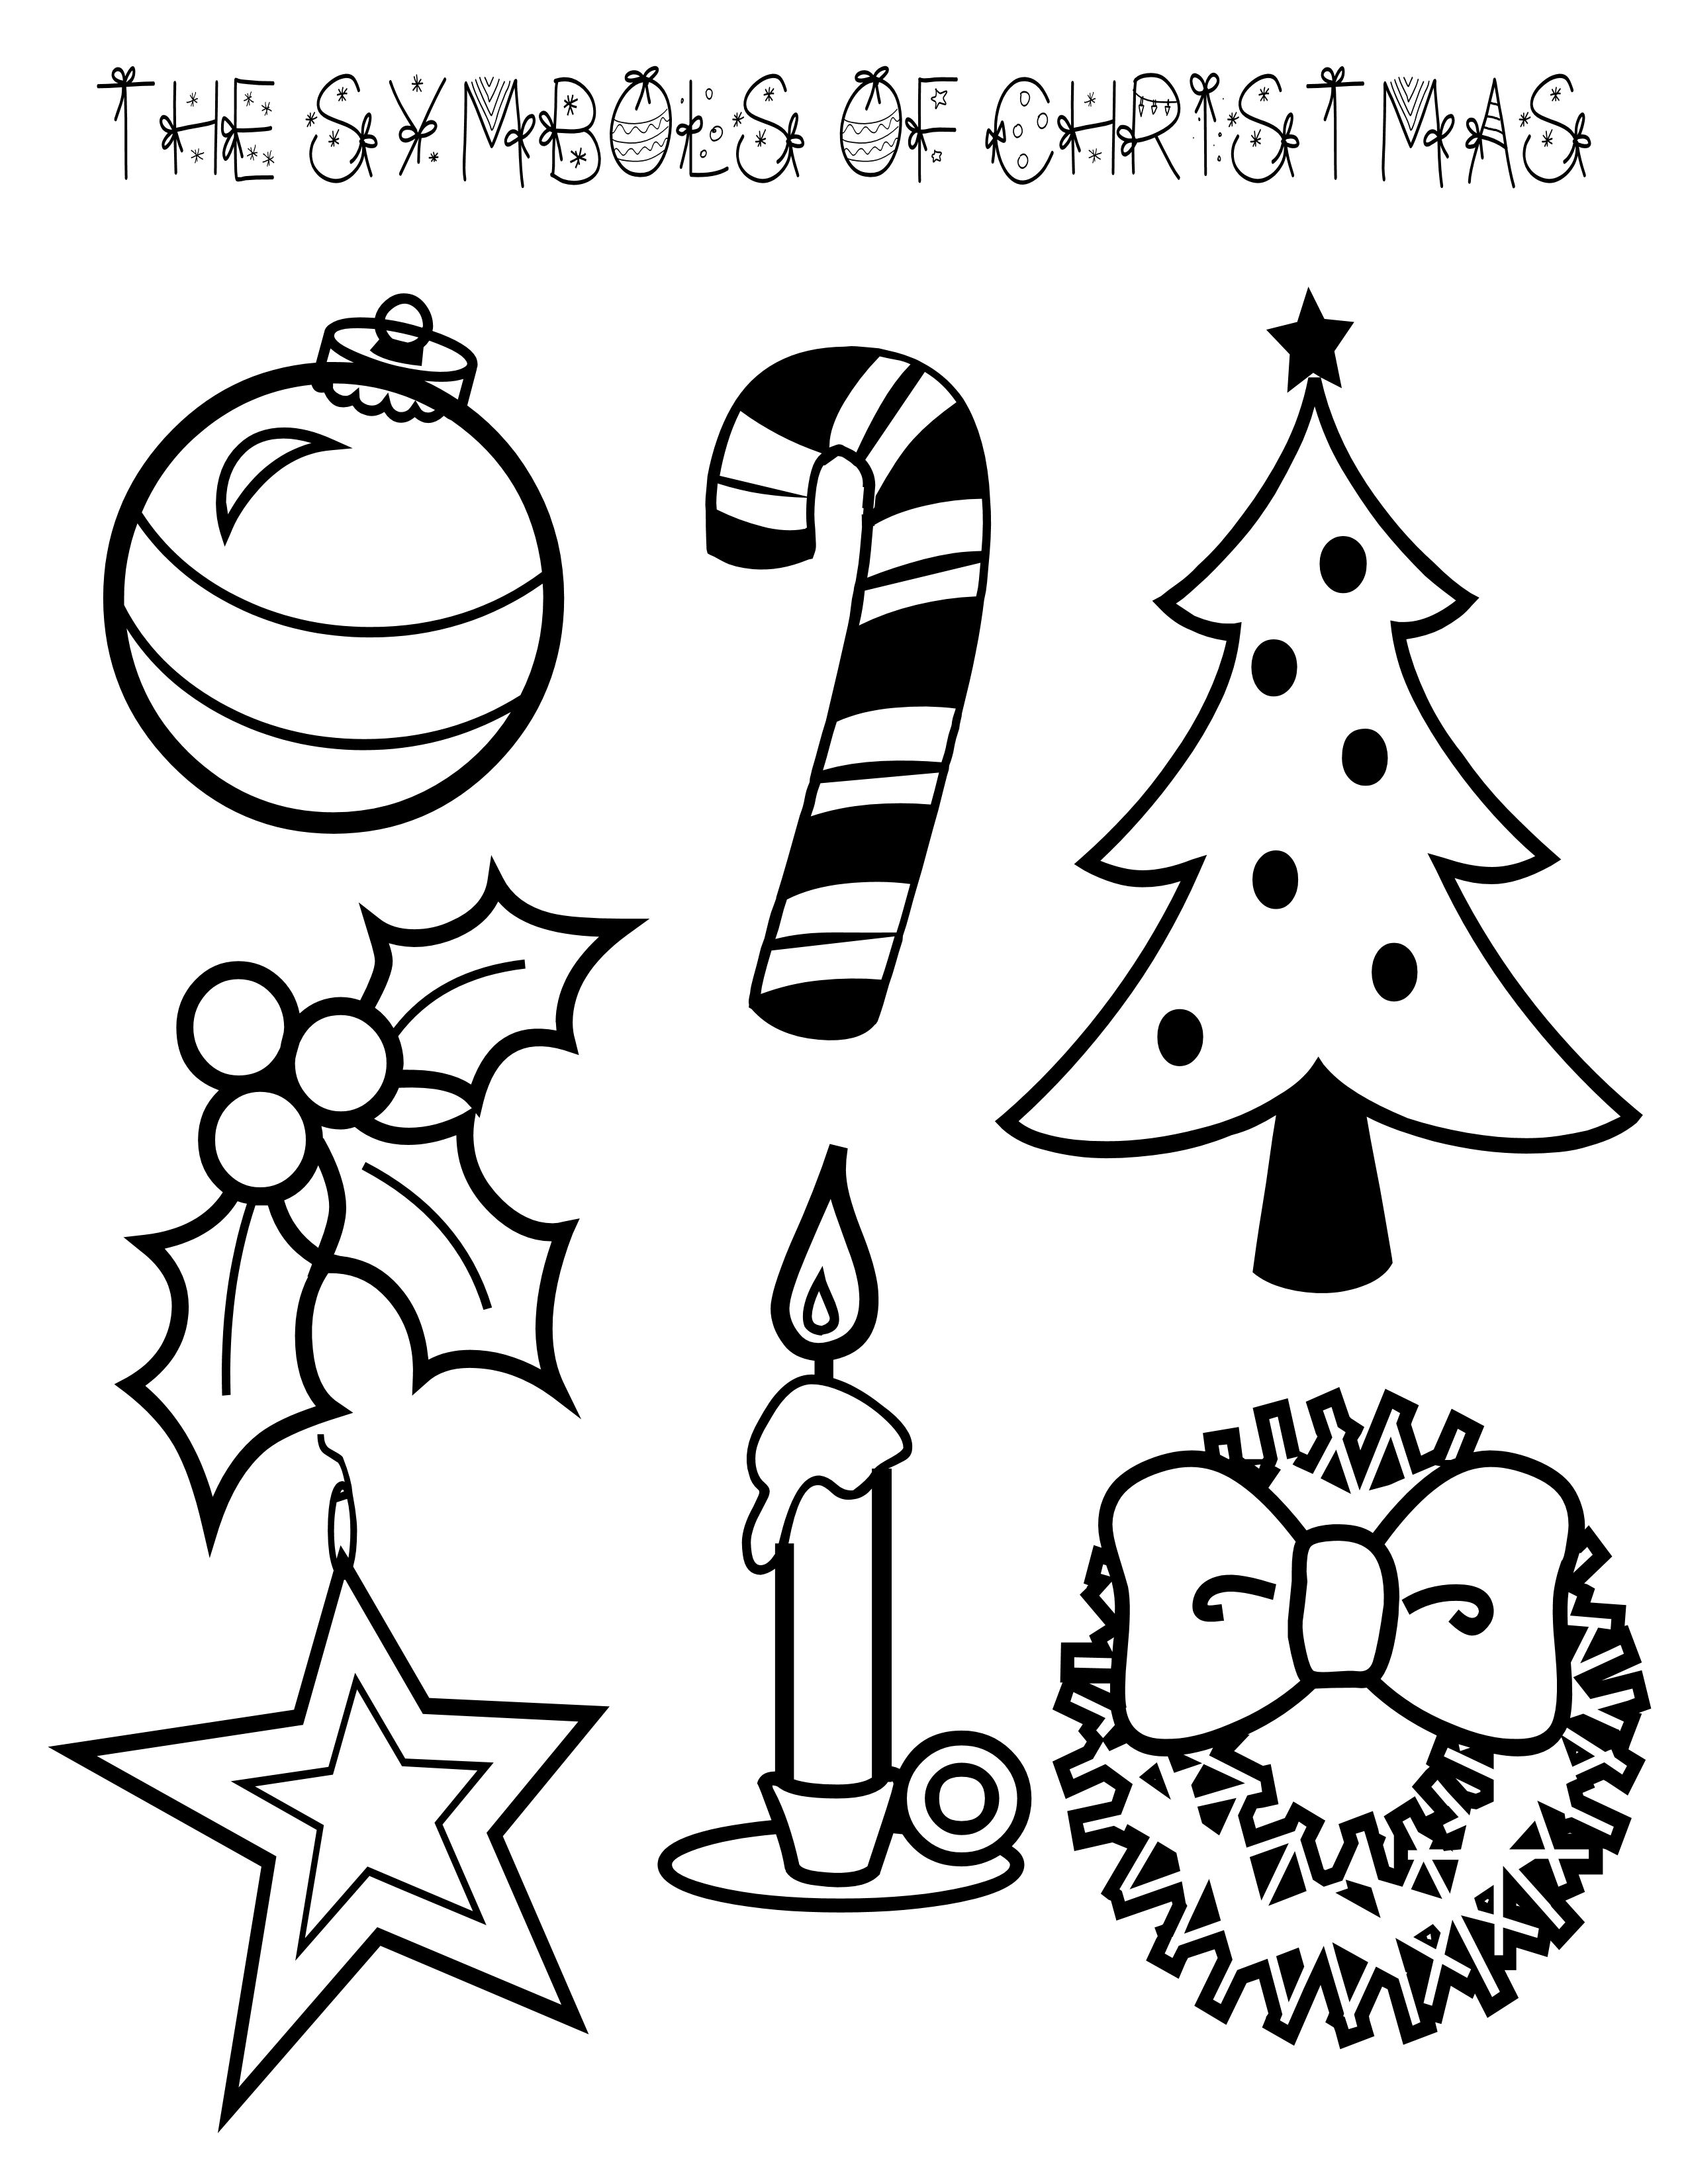 Christmas Coloring Sheets Images With Symbols Of Page